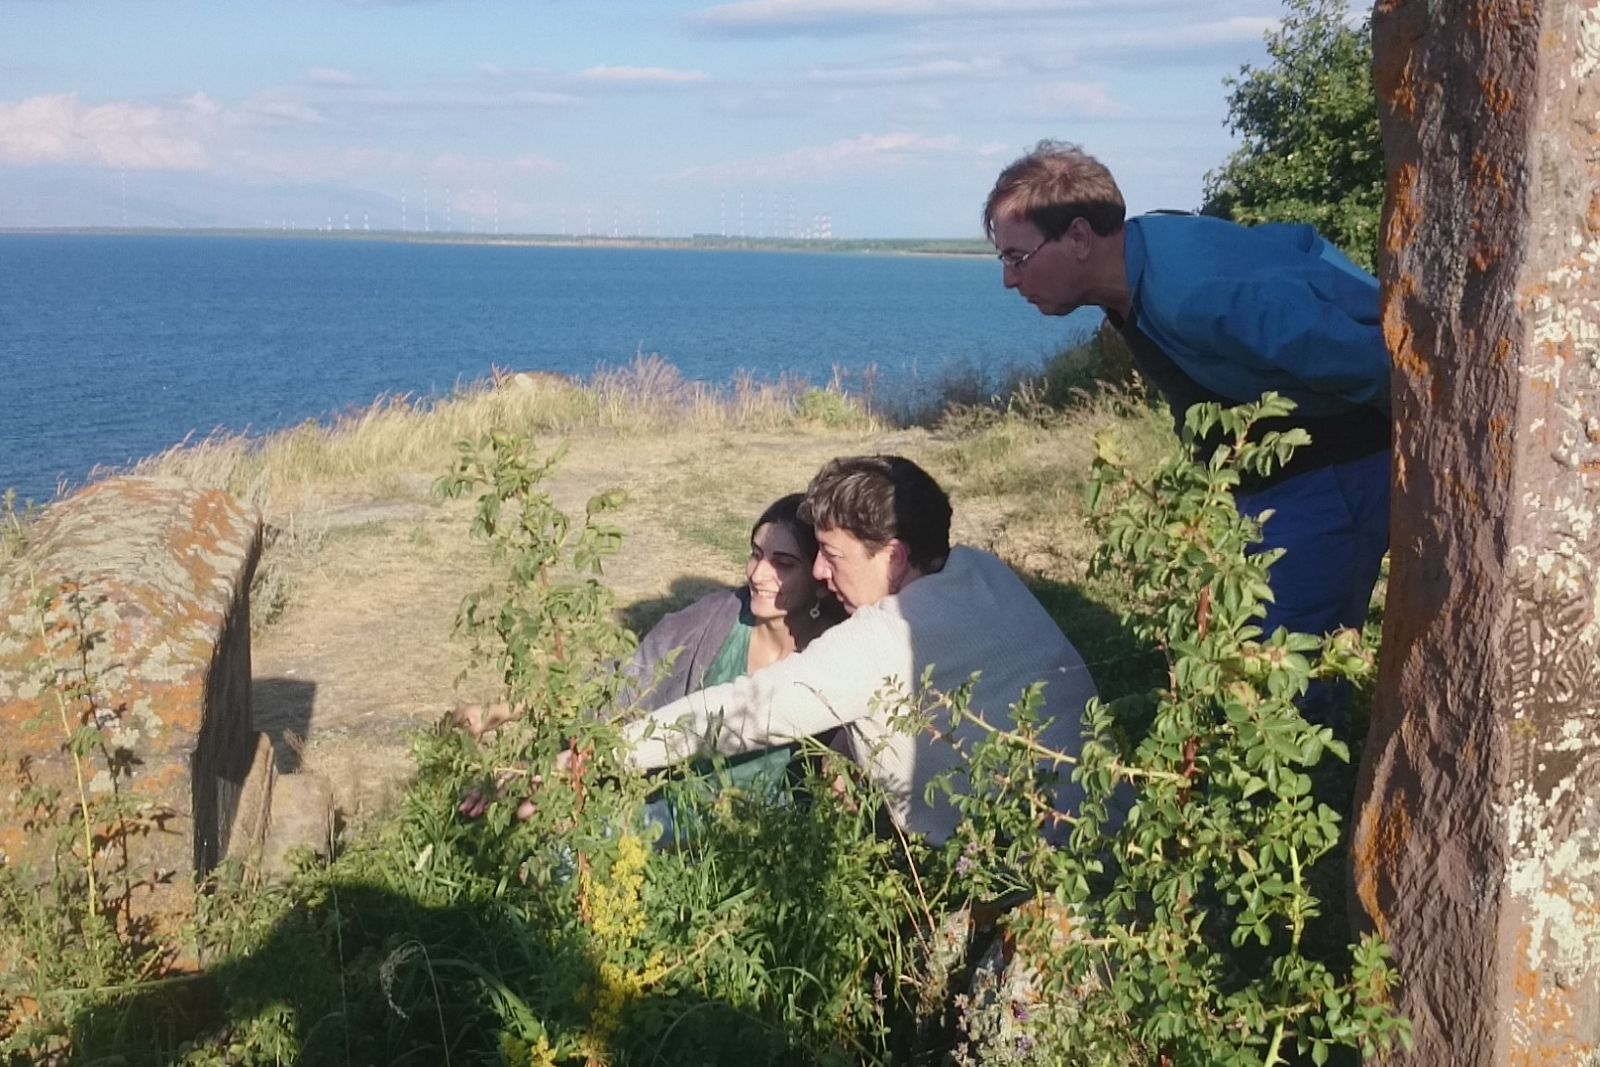 Instructor of Armenian language helps to read an epitaph on a medieval tomb near Hayravank Monastery on Sevan lake. From left to right: Instructor of Armenian language Sona Mnatsakanyan, Yana Tchekhanovets from Hebrew University of Jerusalem and Rene Bekius from Erasmus University in Rotterdam